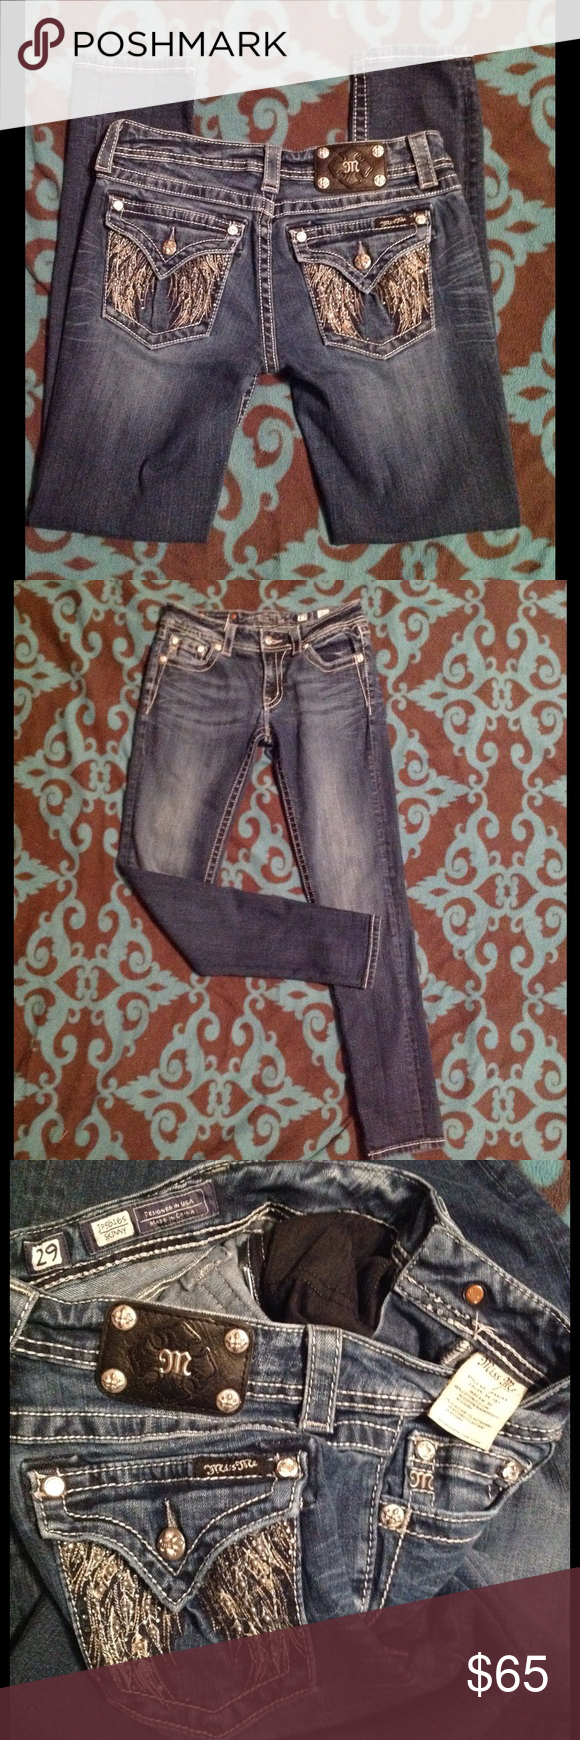 """Miss me skinny jeans fallen angel wings dark wash Miss me skinny jeans. Dark wash (sorry my photo quality isn't the best because of the lighting) . Size 29 inseam 32"""". Bling on pockets with fallen angel wing design. Good preowned condition. Miss Me Jeans Skinny"""